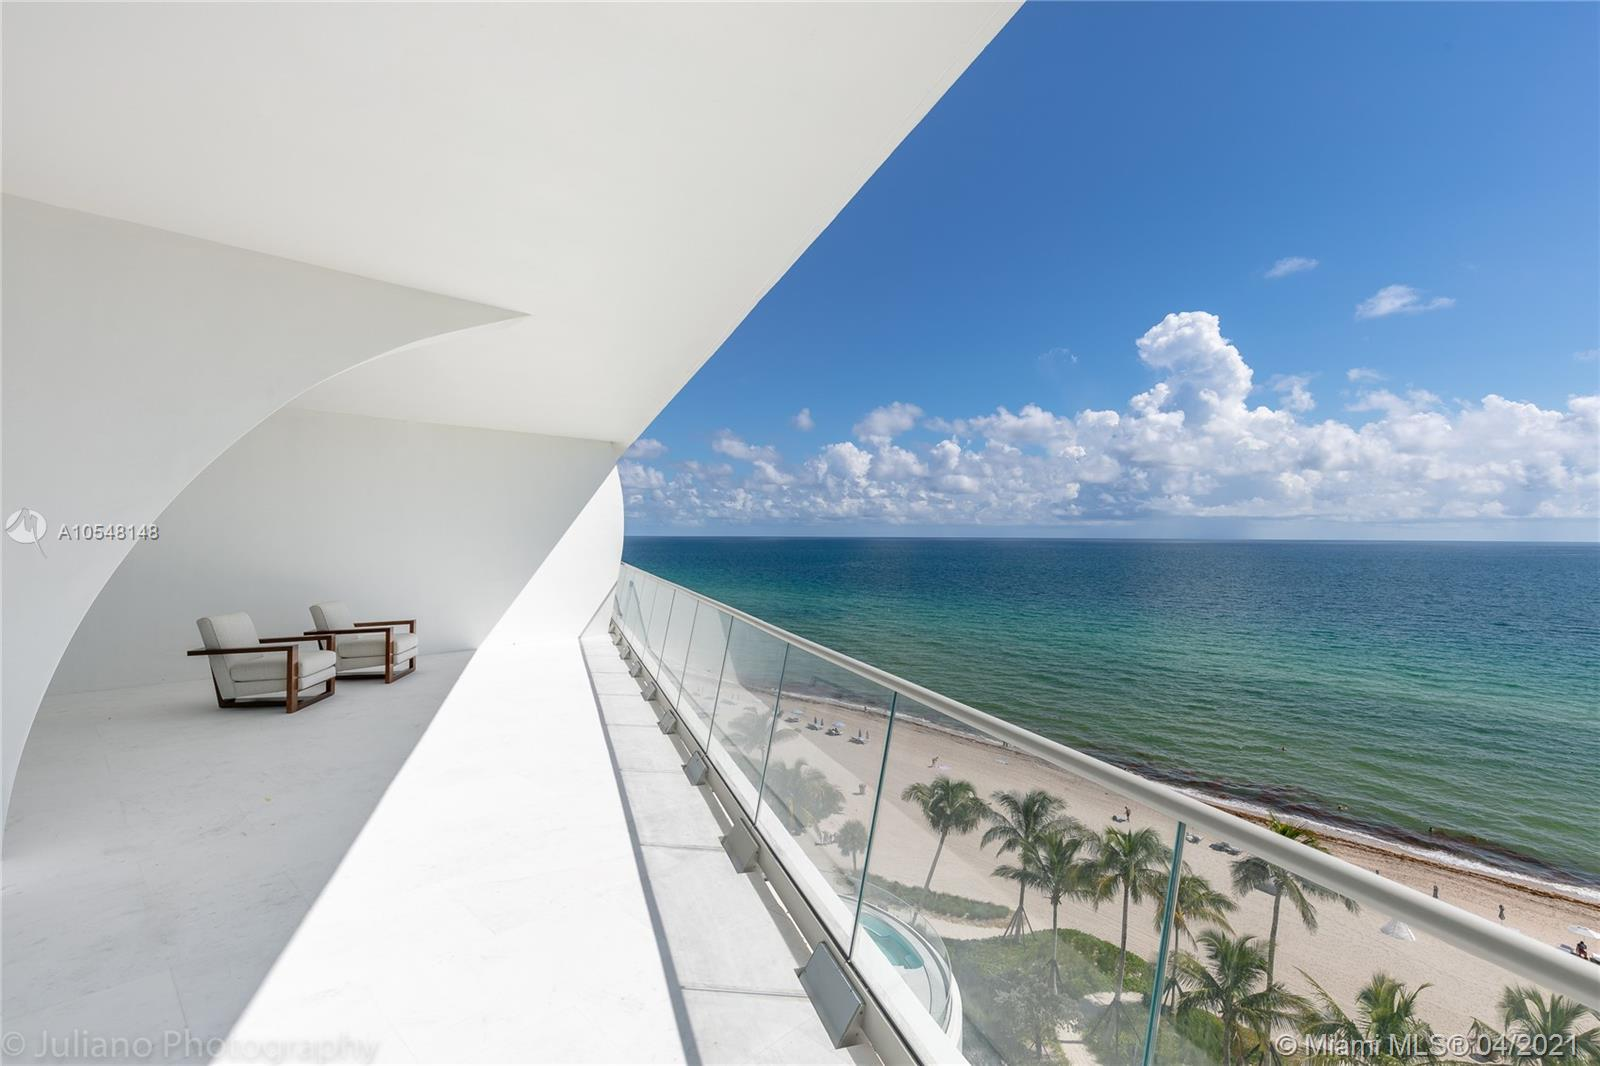 HUGEEE PRICE REDUCTION!!! UNIT FULLY FURNISHED. THE NEWEST AND MOST UNIQUE BOUTIQUE BUILDING OF SUNNY ISLES, Jade Signature's extraordinary resort-like experience is further enhanced by having three floors entirely dedicated to amenities and 55 stories of elegantly sculptural, flow-through residences that boast breathtaking views. THIS UNIT ITS COMPLETELY FINISHED WITH TOP QUALITY FINISHES AND FURNITURE AND CONSISTS OF 3 SUITES, 1 MAIDS QUARTER, 1 GUEST BATHROOM AND COMES WITH 2 PARKING SPACES SIDE BY SIDE  AND 1 STORAGE UNIT.